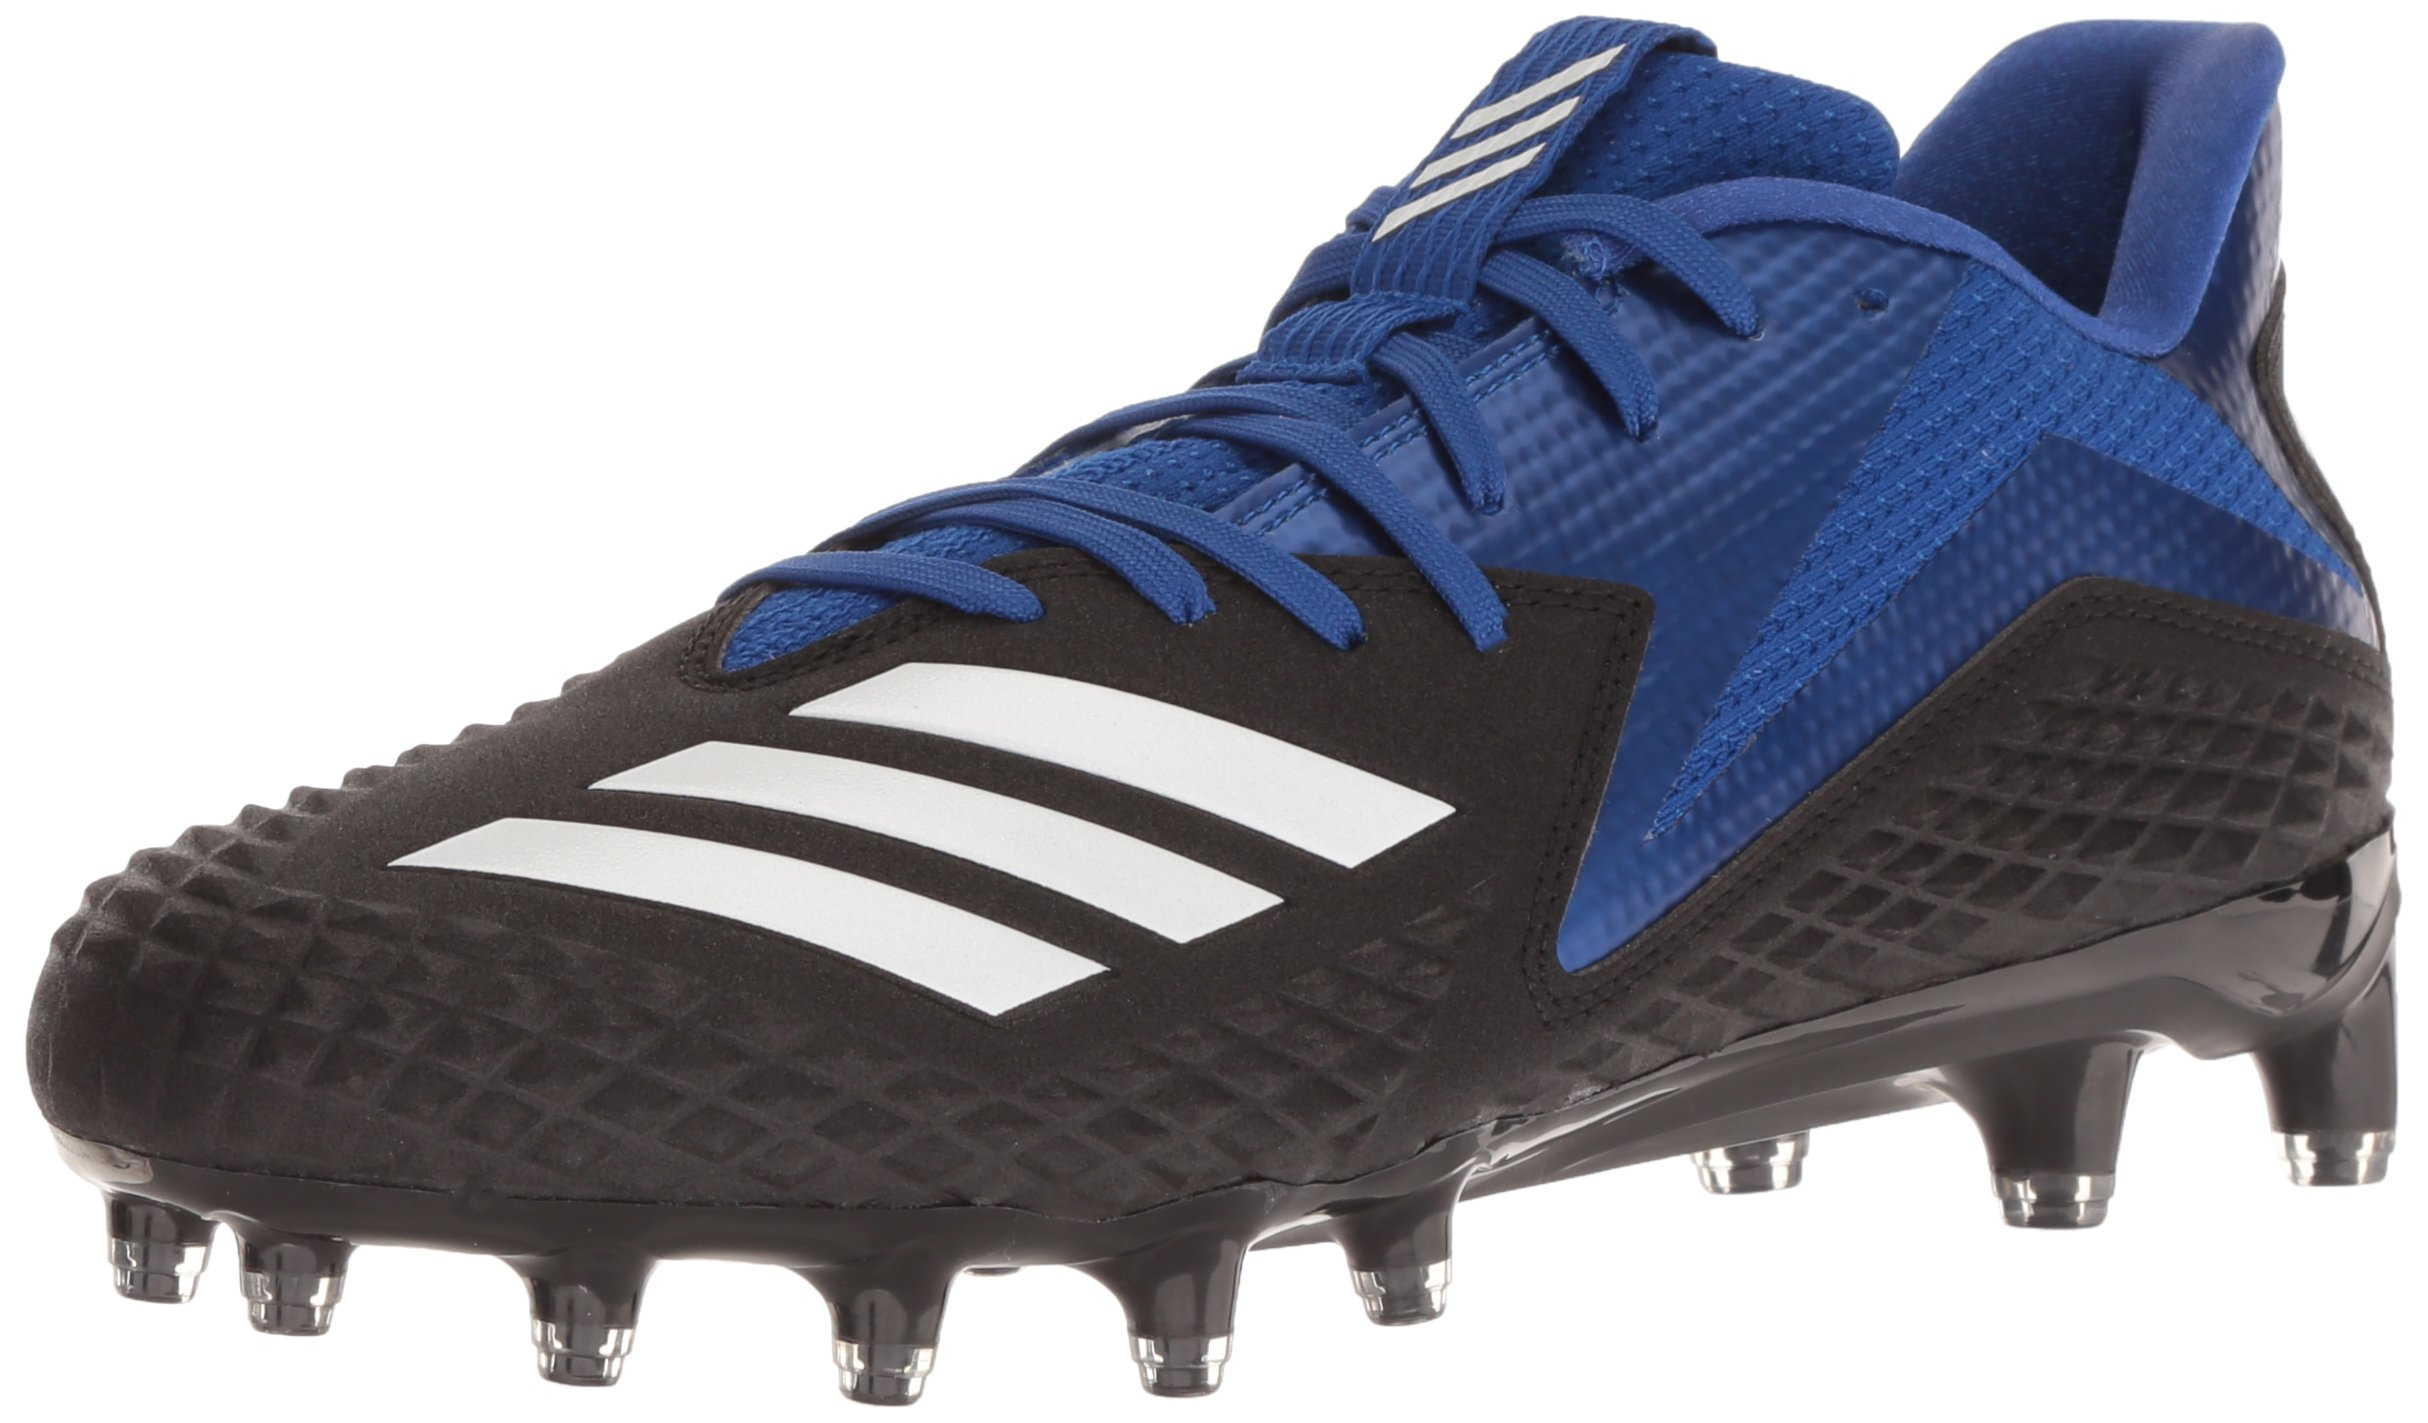 adidas Men's Freak X Carbon Mid Football Shoe, Black/White/Collegiate Royal, 11.5 M US by adidas